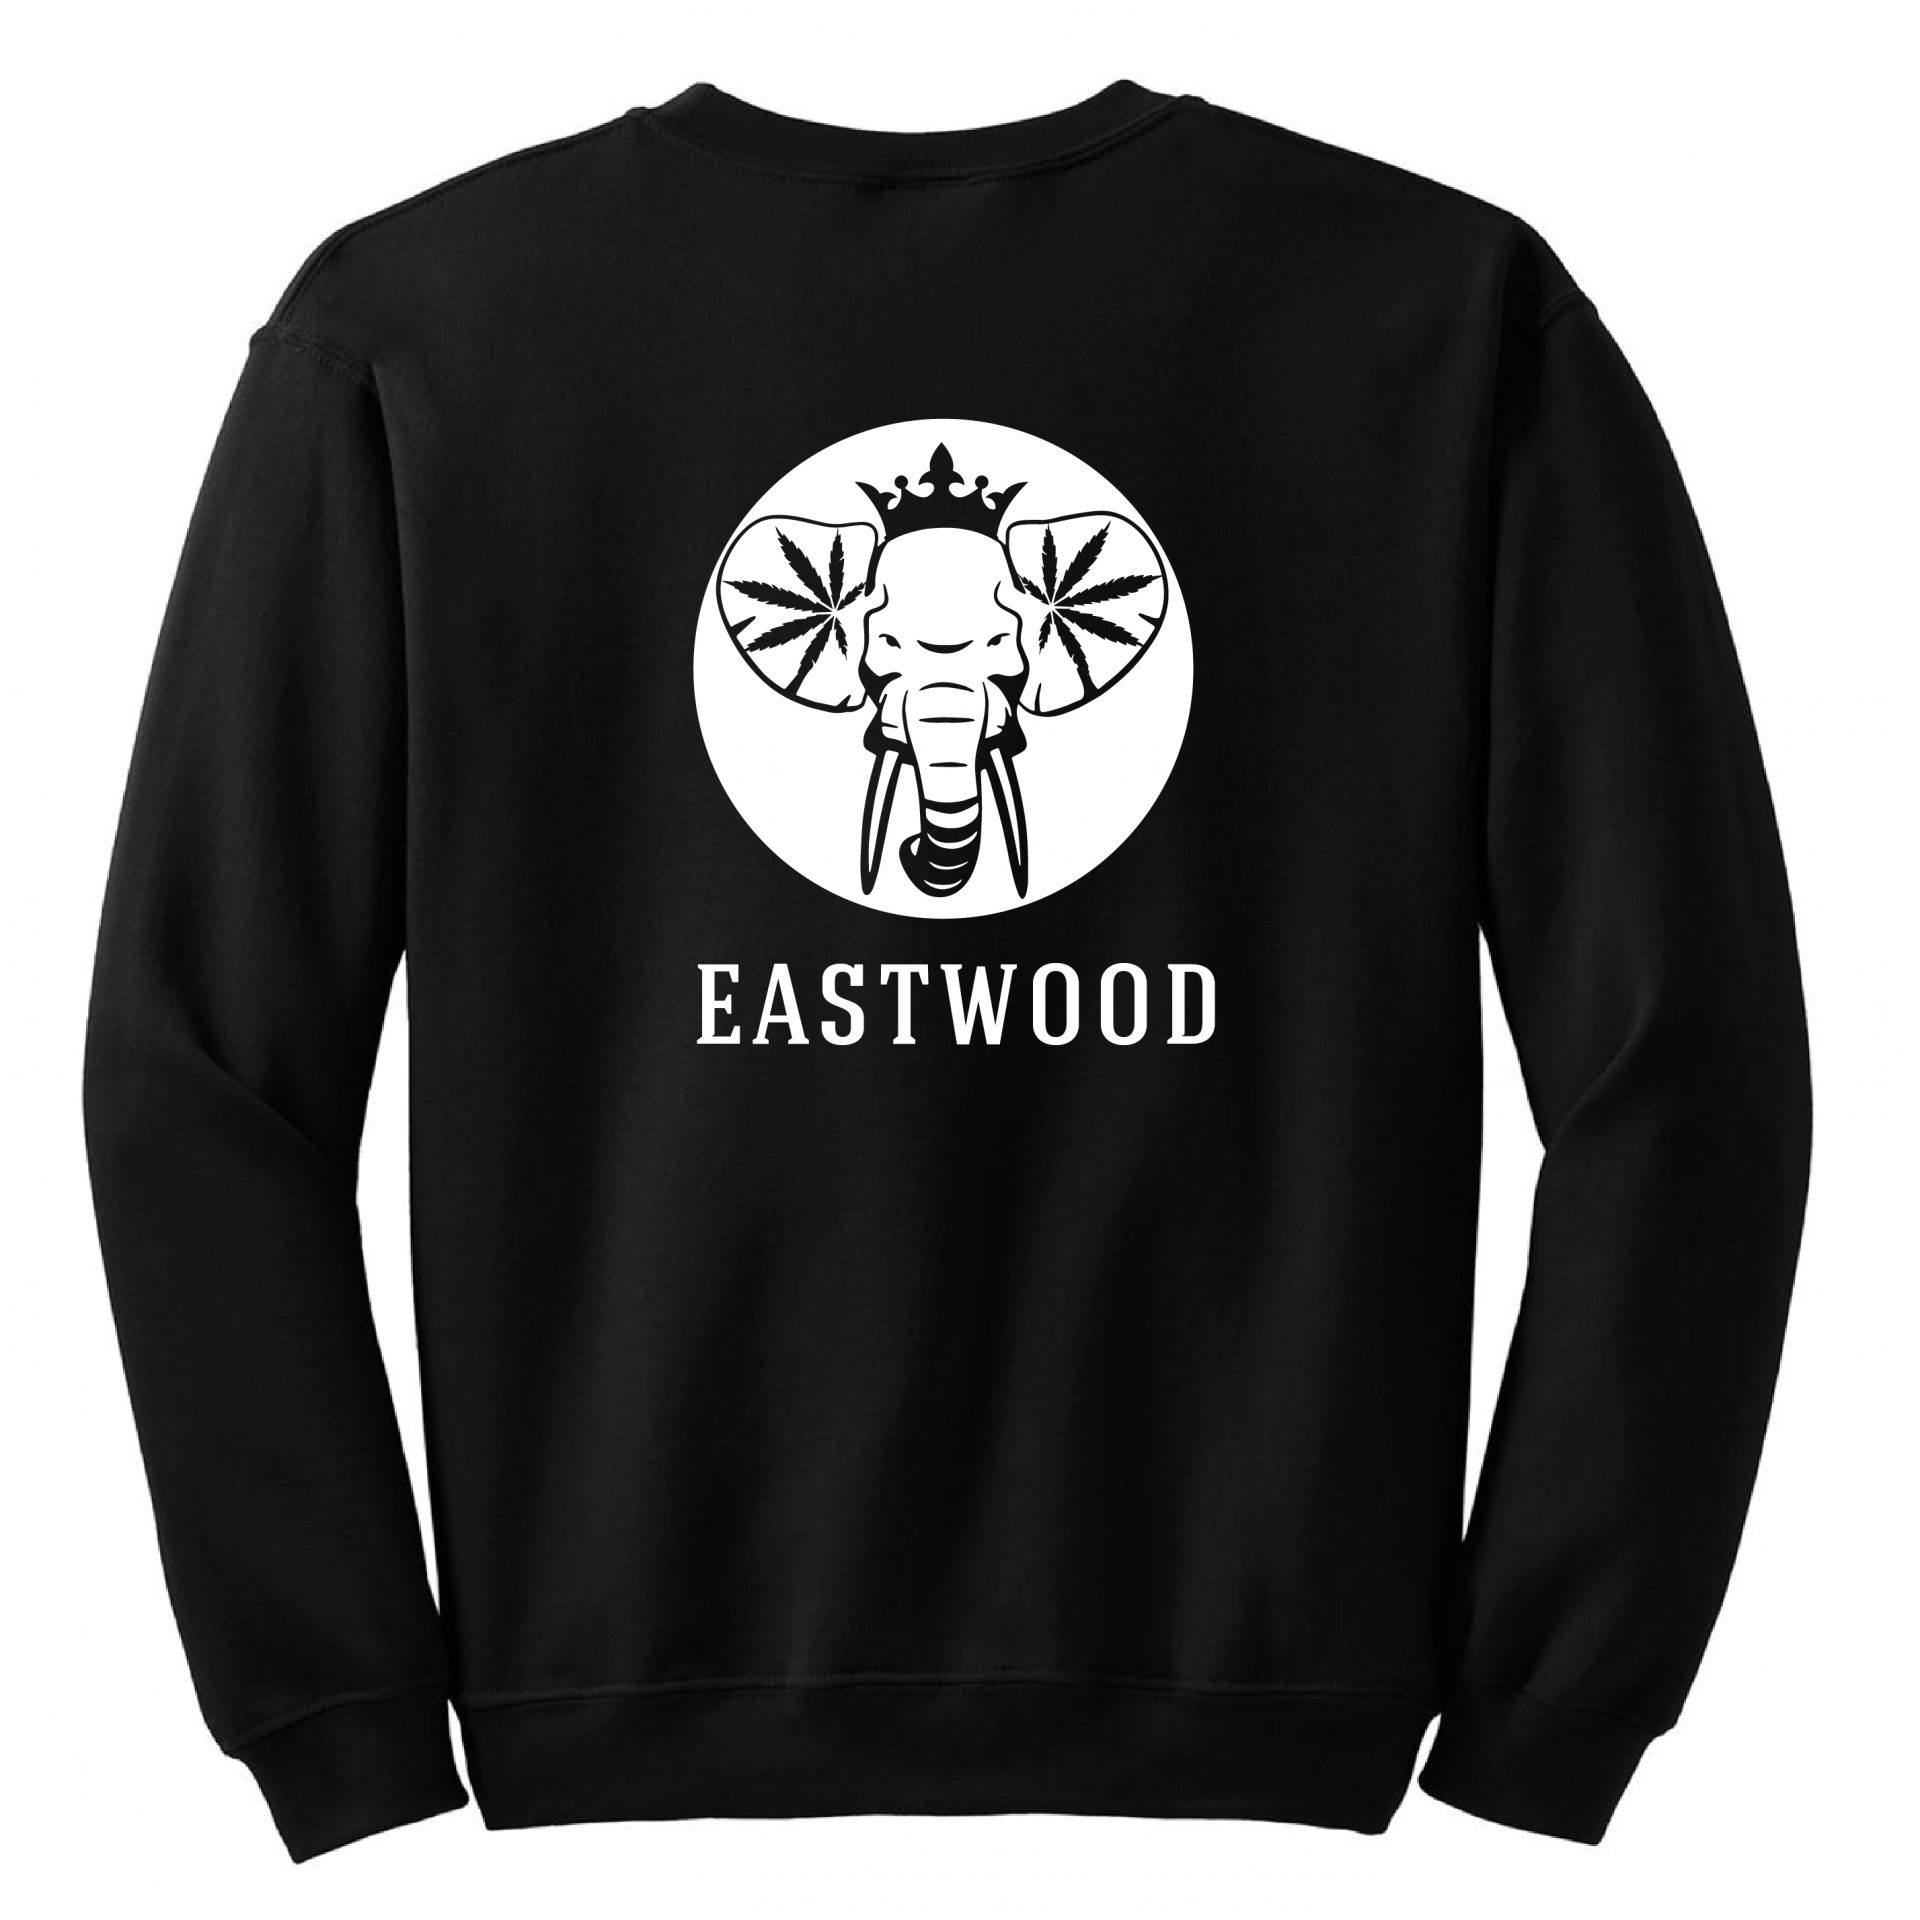 Eastwood Sweatshirt